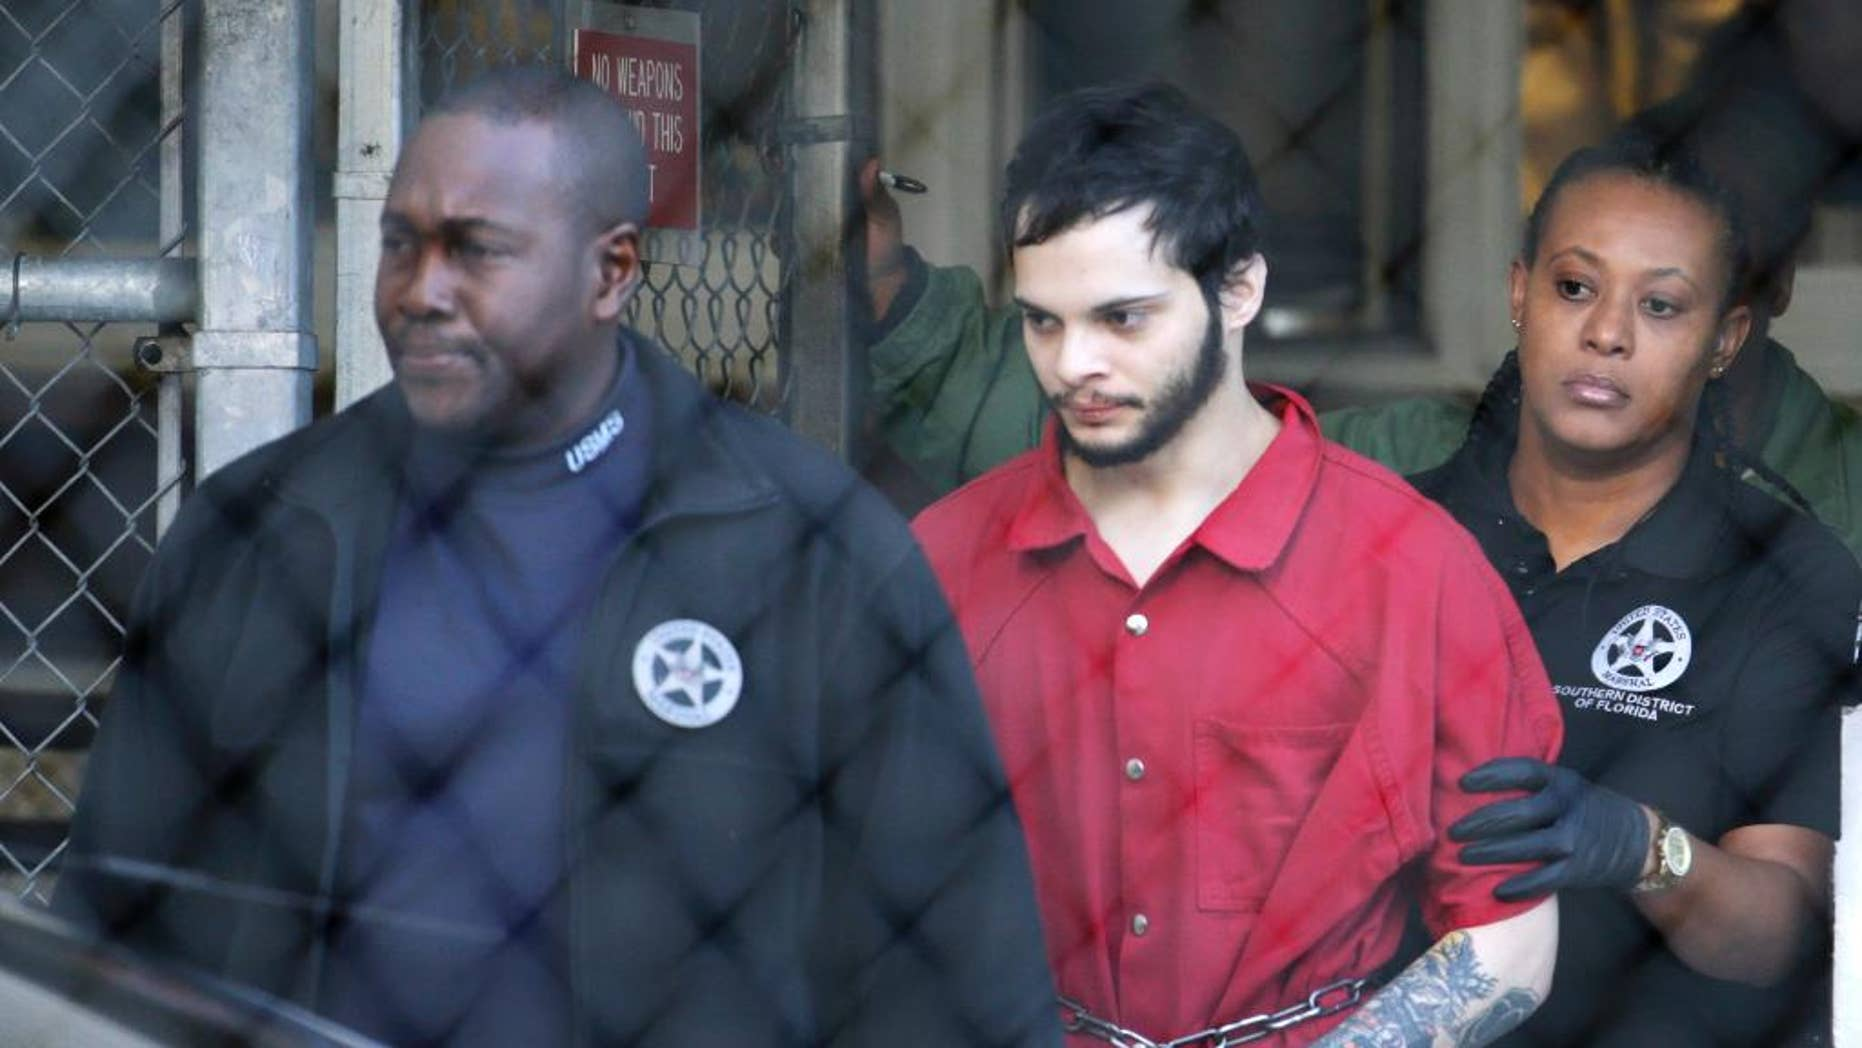 Esteban Santiago, center, is led from the Broward County jail for an arraignment in federal court, Monday, Jan. 30, 2017, in Fort Lauderdale, Fla.